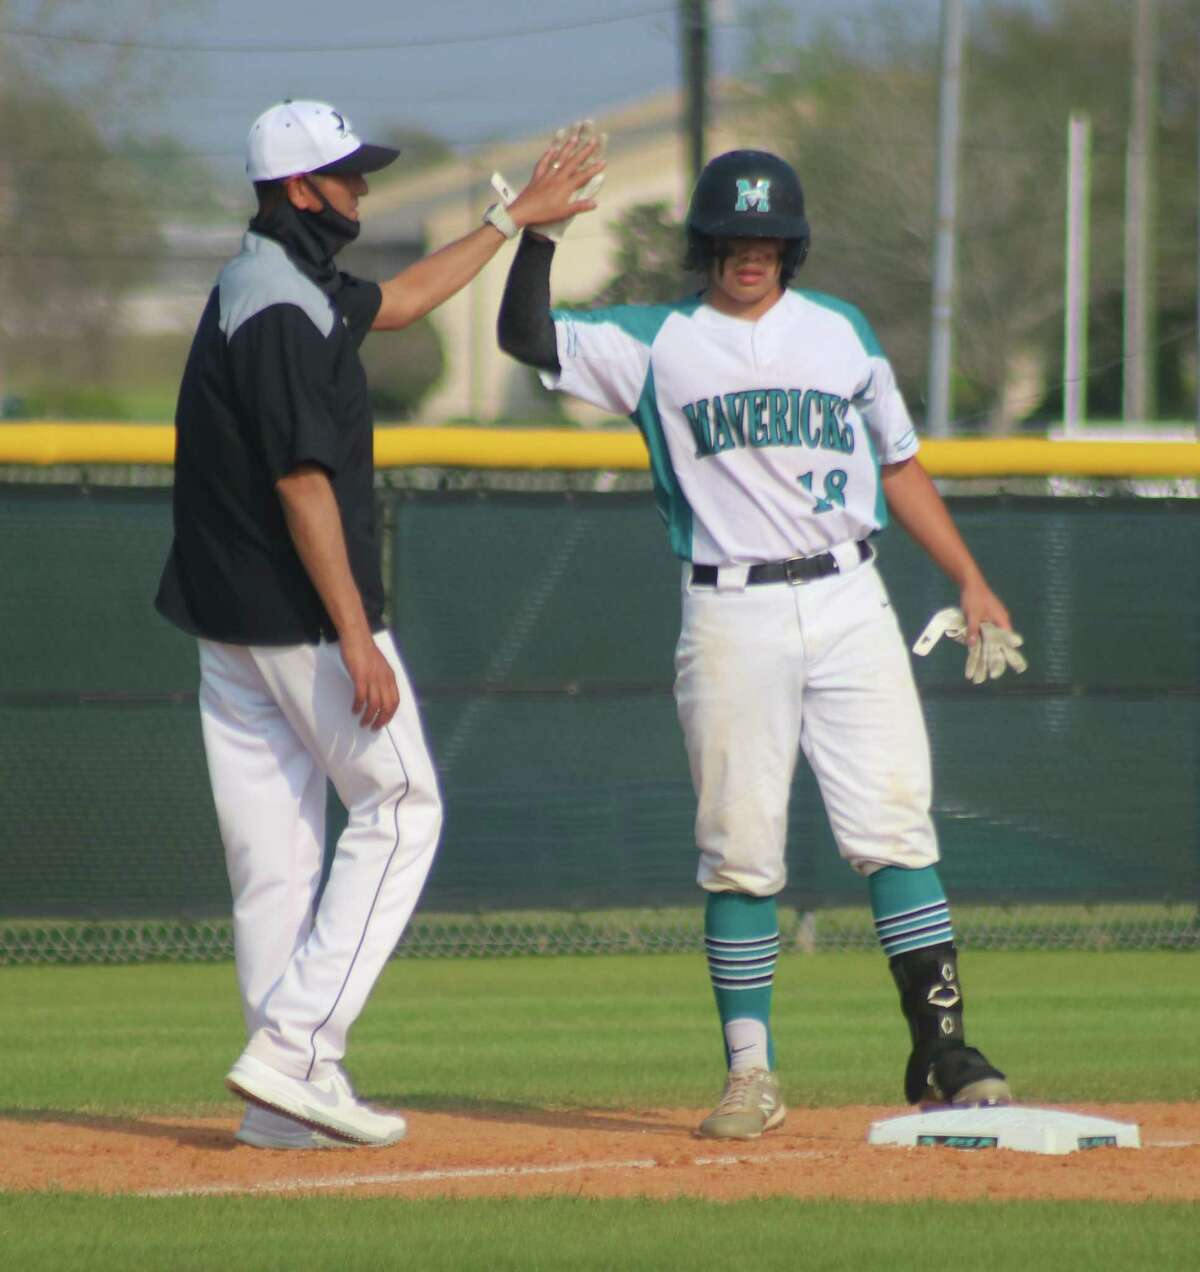 Pasadena Memorial head coach Terry Garza, the District 22-6A Baseball Coach of the Year, greets a Maverick at third base. Garza guided the Mavs to an 11-game district winning streak this spring.